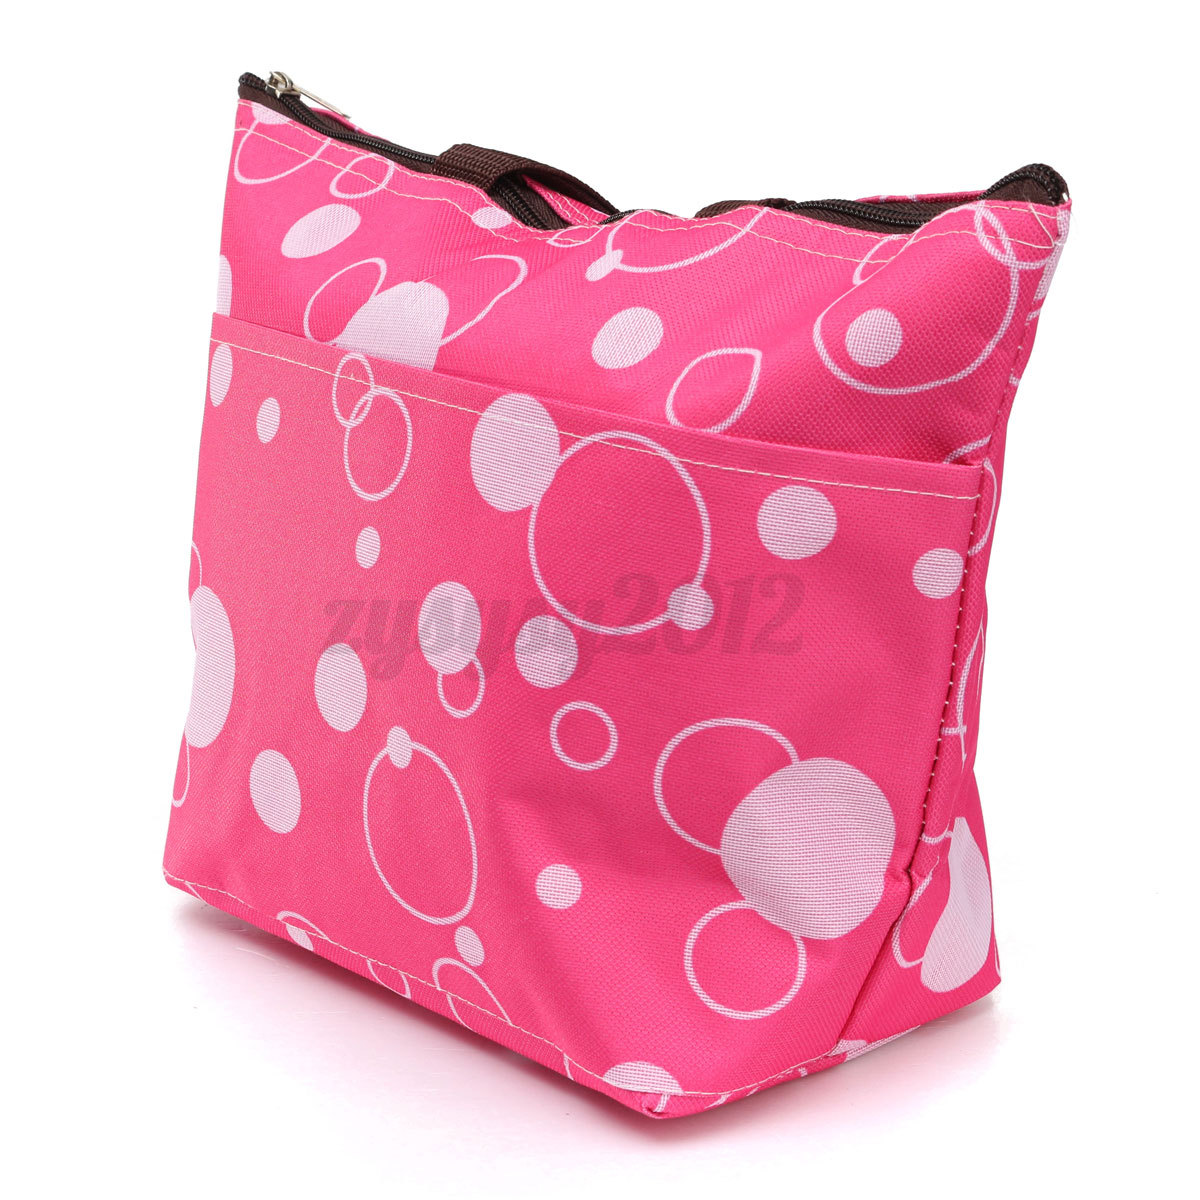 10 style voyage sac go ter bento bo te pique nique d jeuner isotherme bag ebay. Black Bedroom Furniture Sets. Home Design Ideas